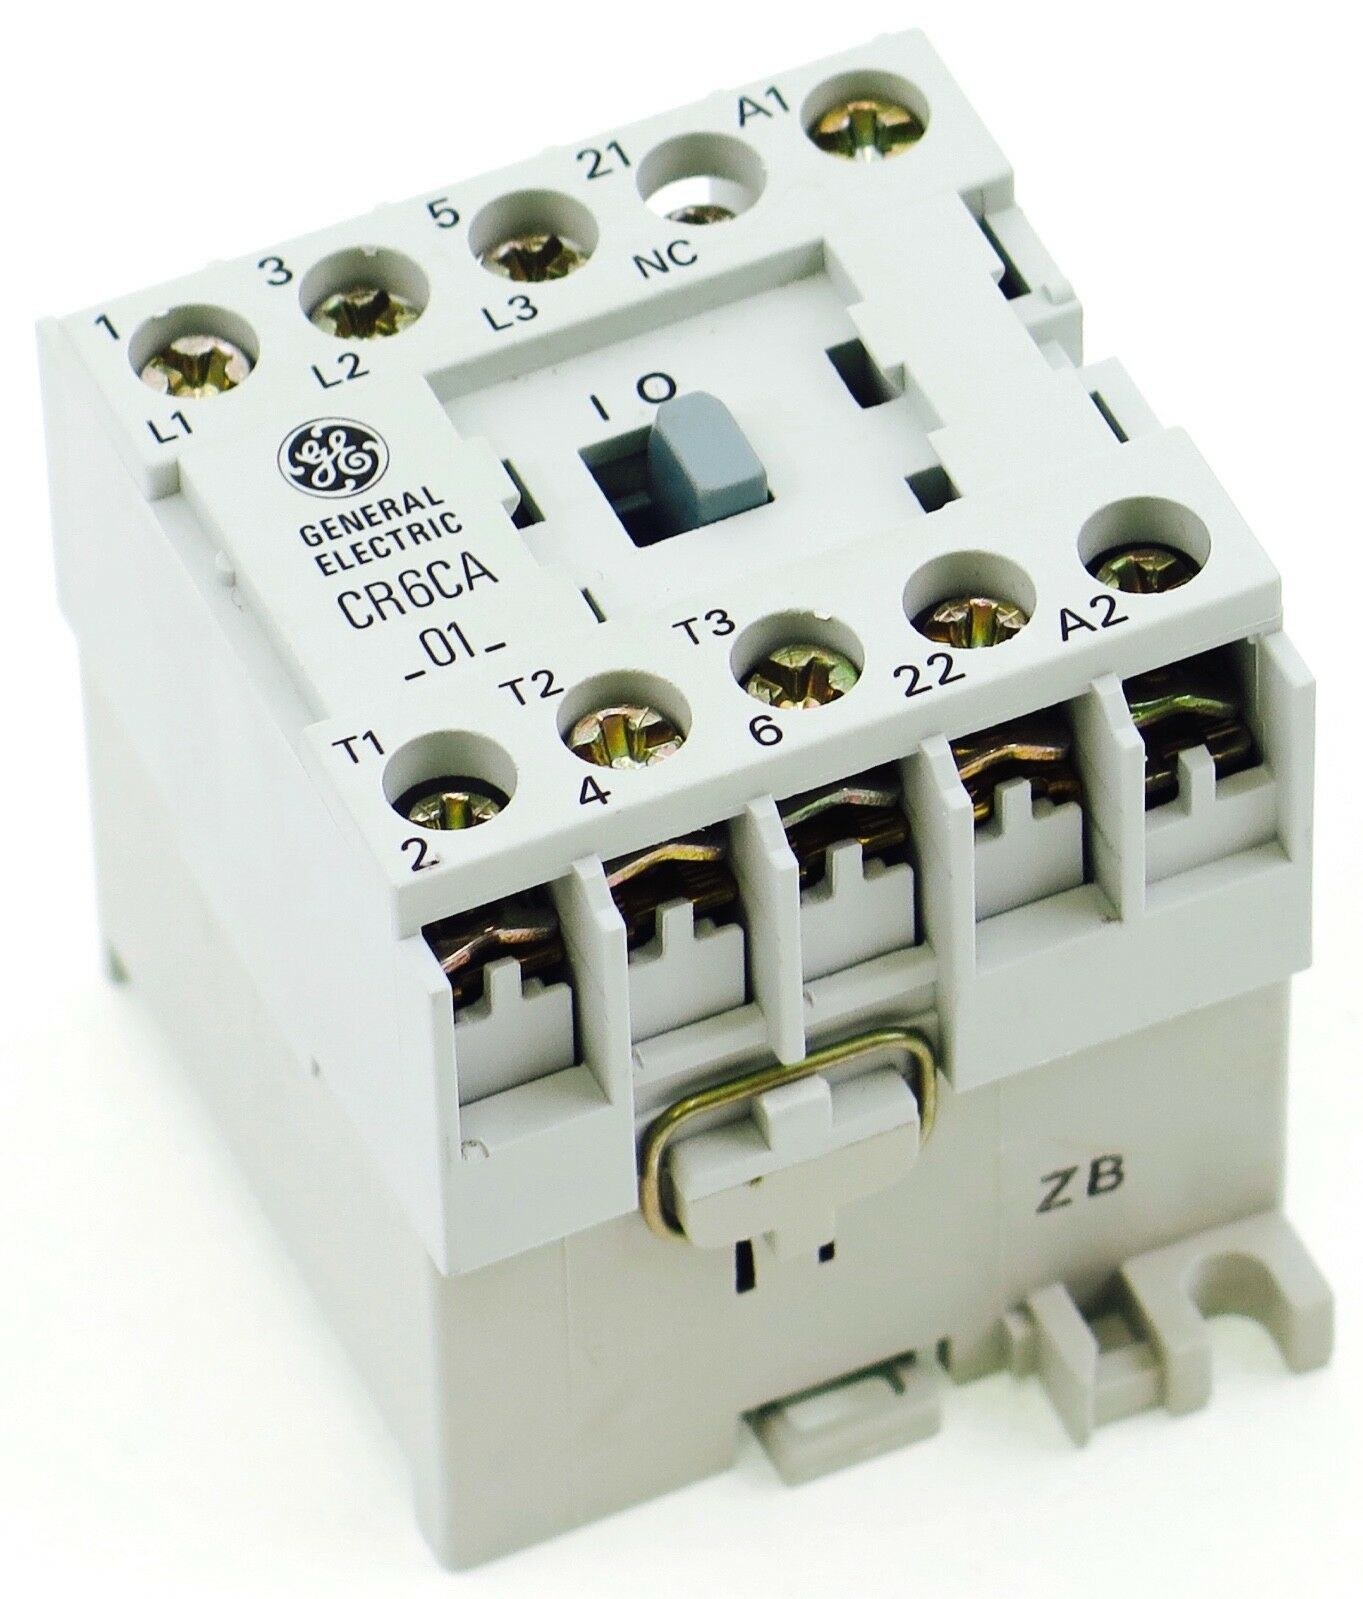 New Ge Miniature Din Rail Magnetic Contactor Cr6cab3b 220vac Coil Wiring 460v 3 Phase 1 Of 2 See More